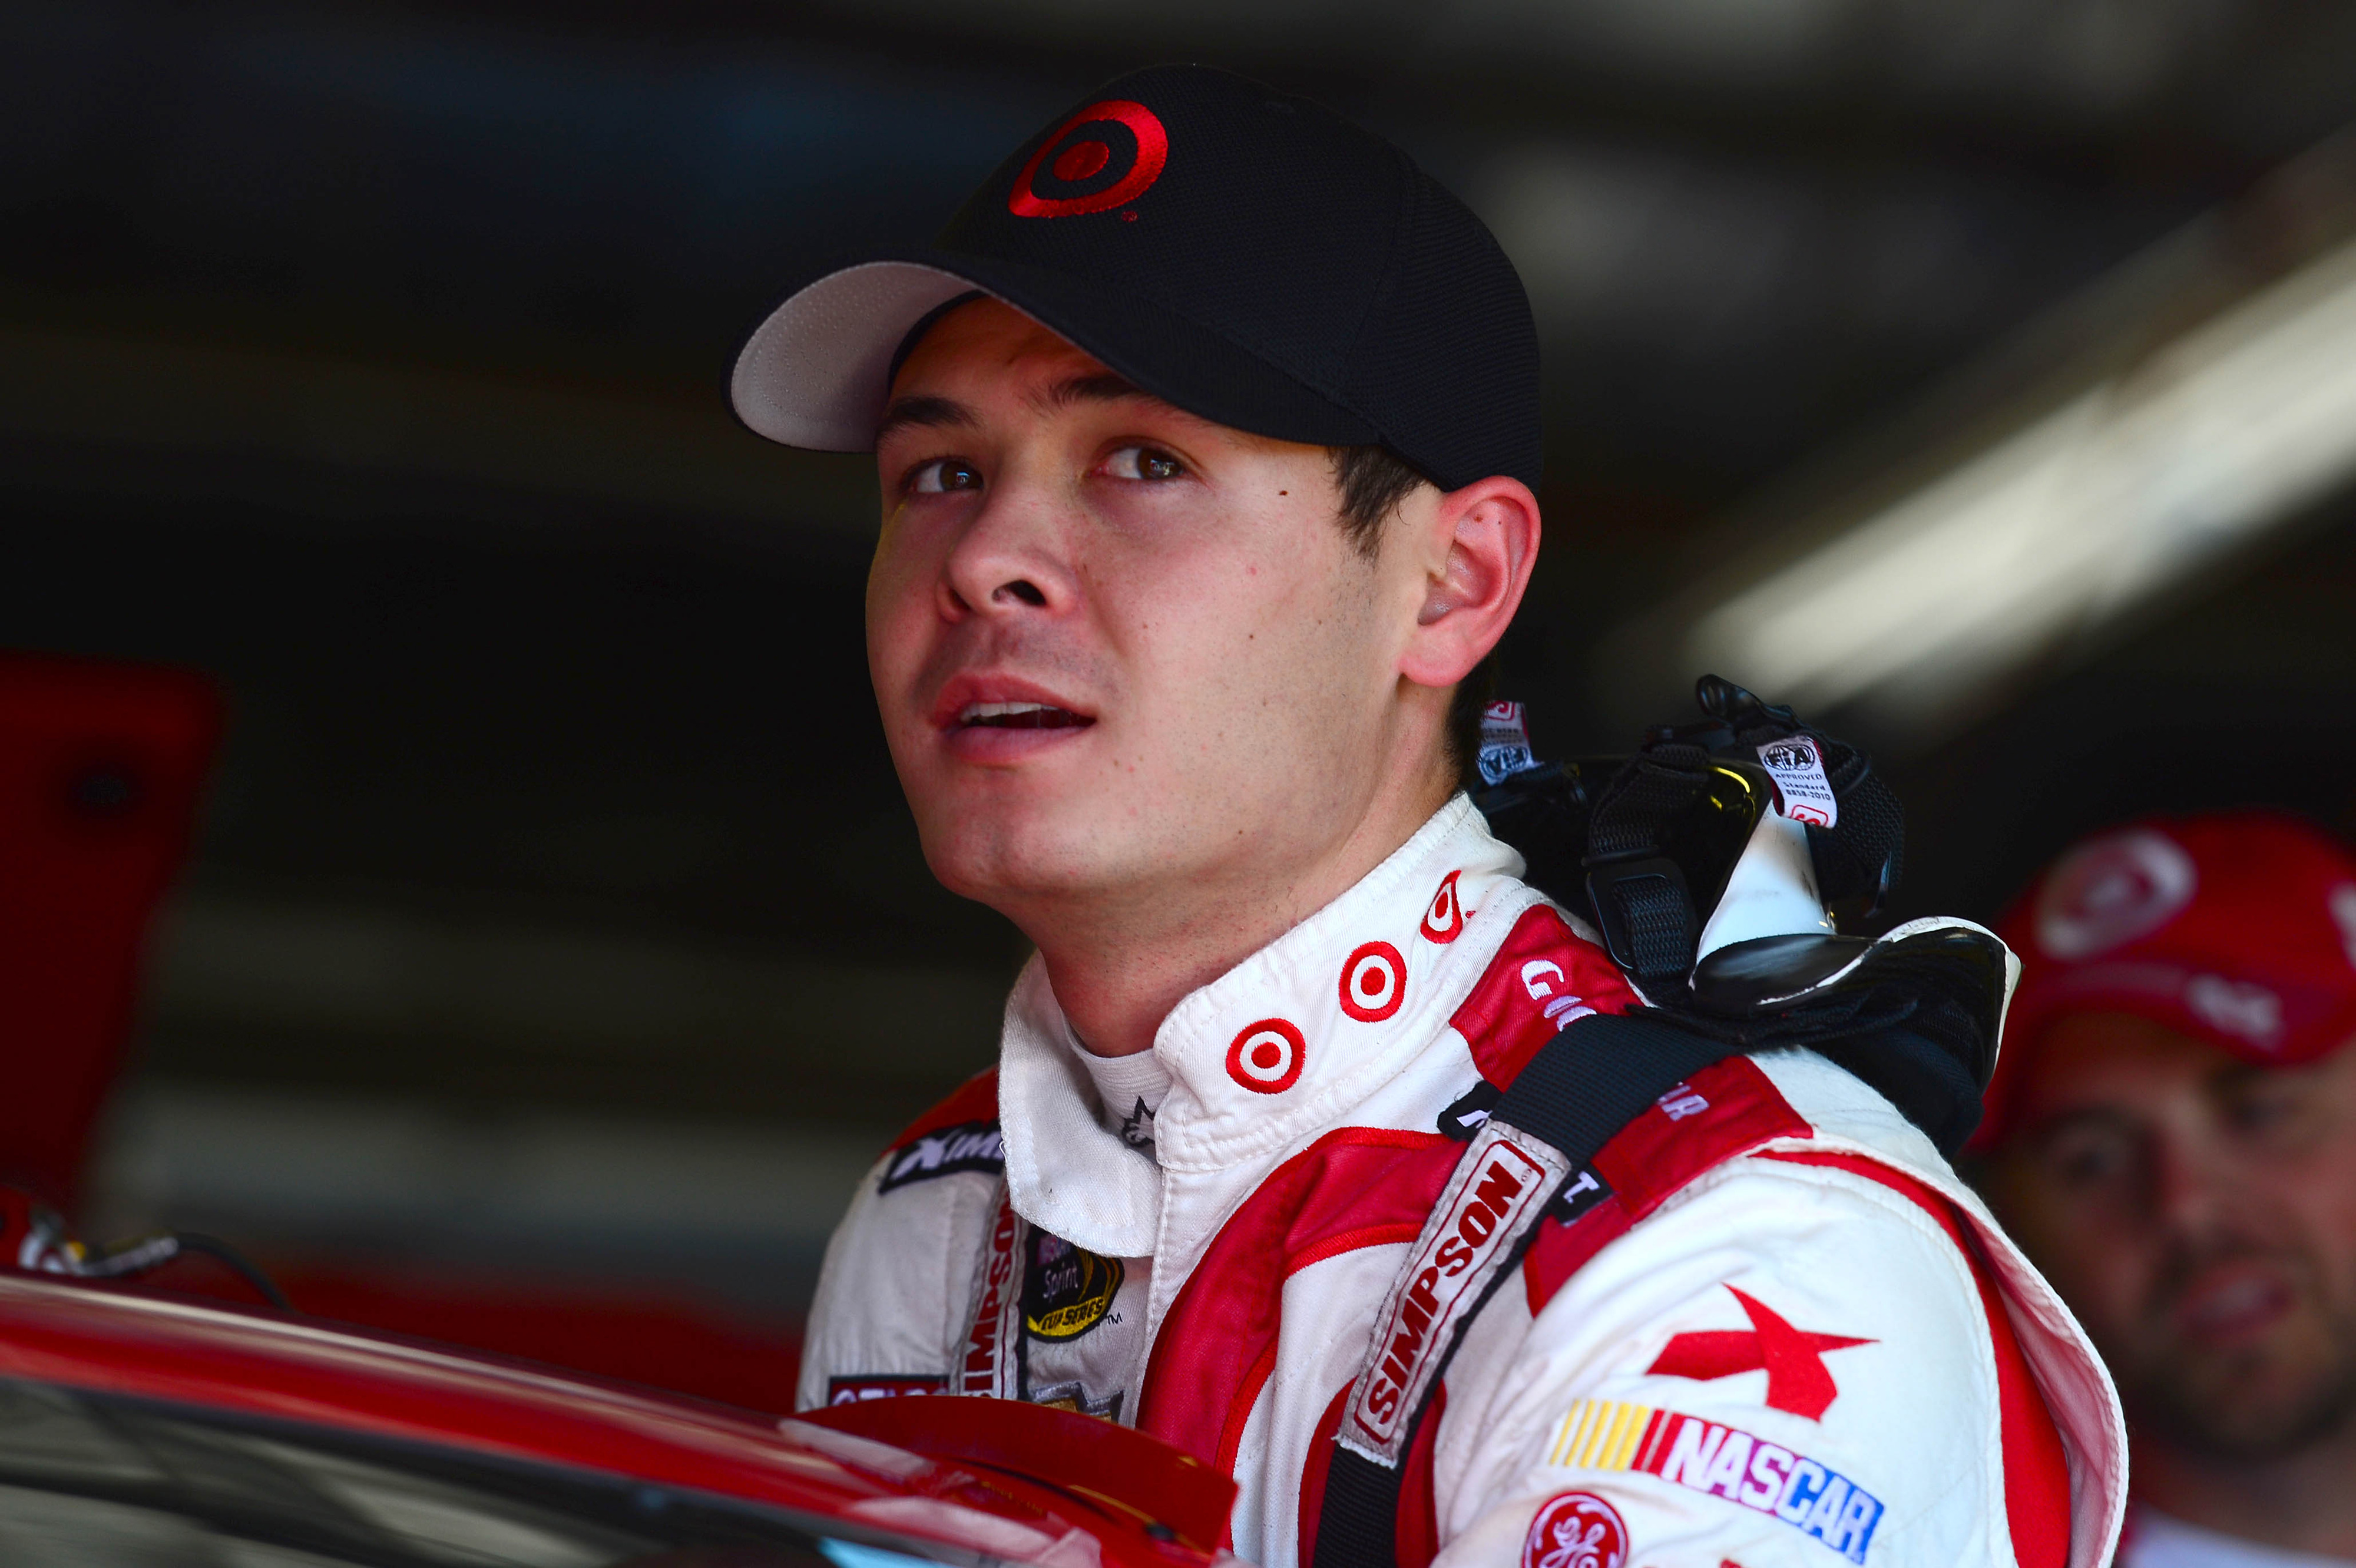 2014 Quicken Loans 400: Lively 8th-place finish for rookie Kyle Larson